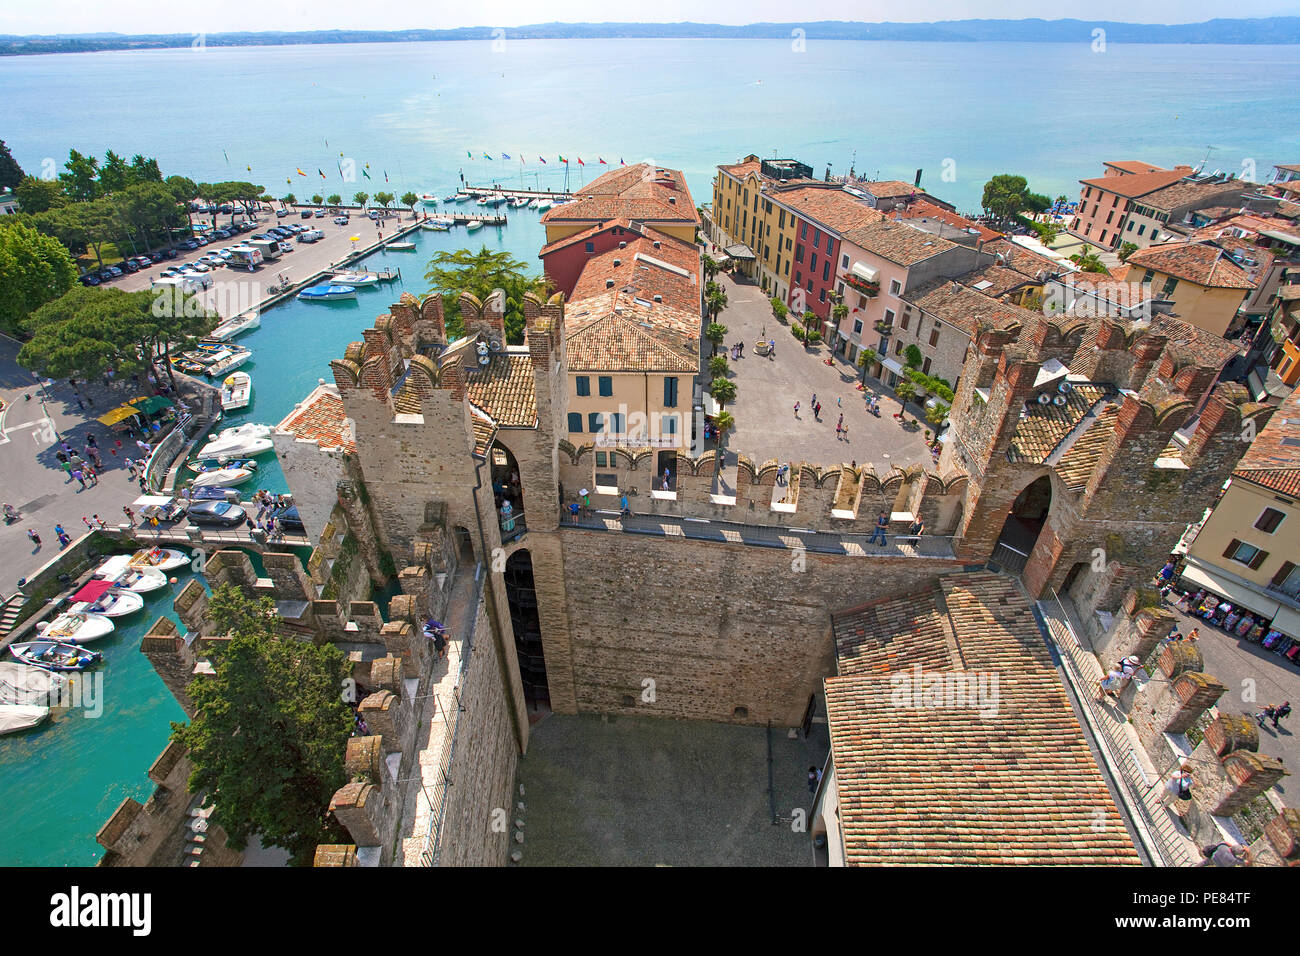 View from Scaliger castle on harbour and old town of Sirmione, Lake Garda, Lombardy, Italy - Stock Image